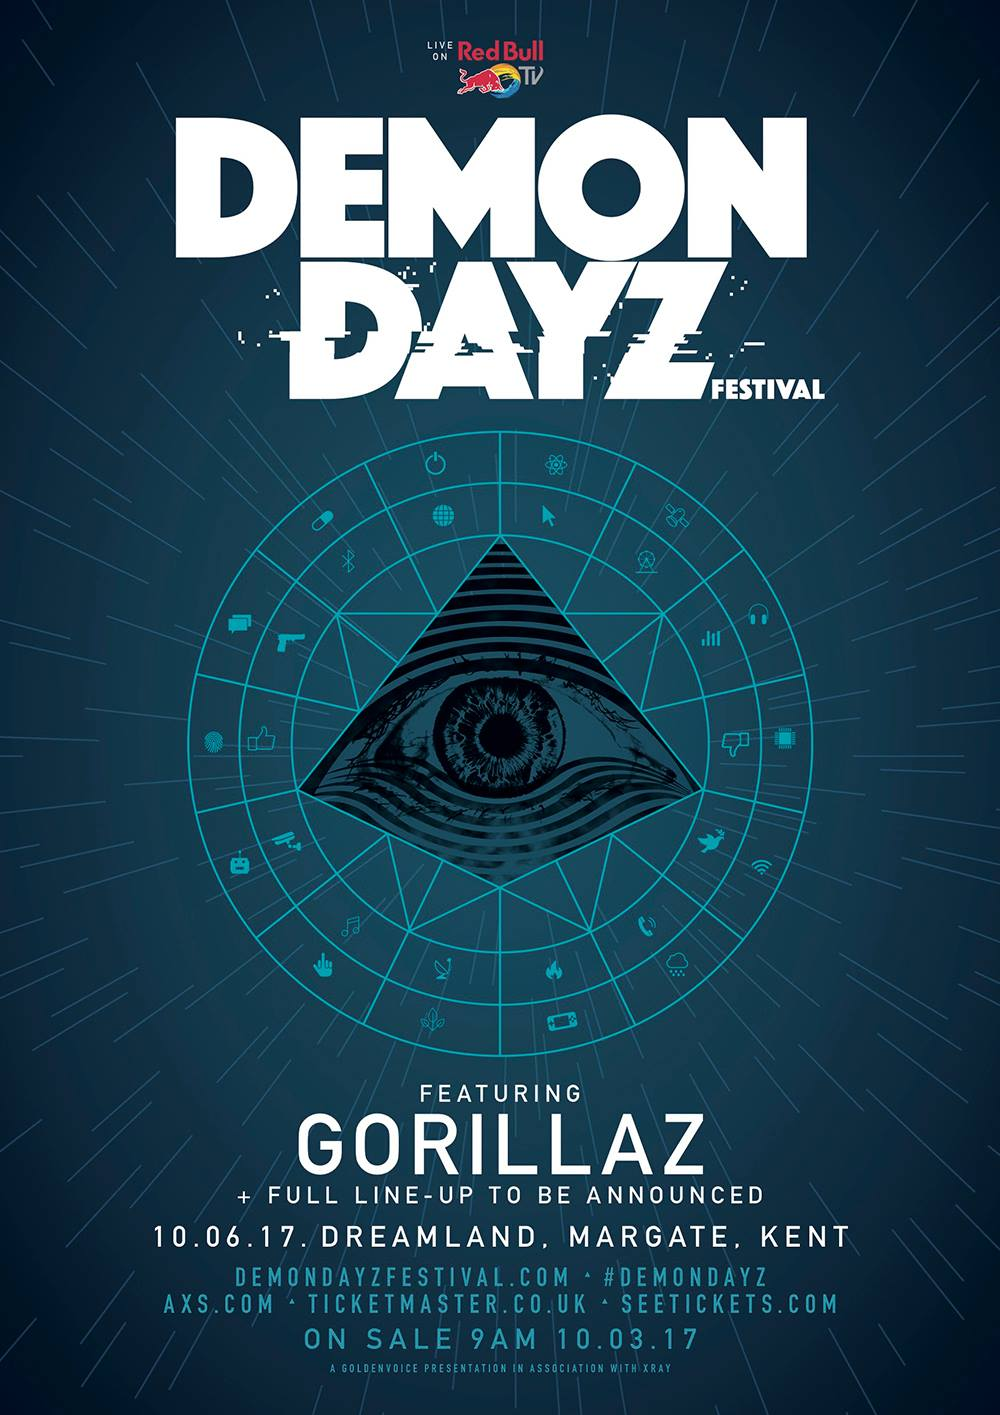 demon dayz Gorillaz announce first live performance in five years with launch of their own Demon Dayz festival